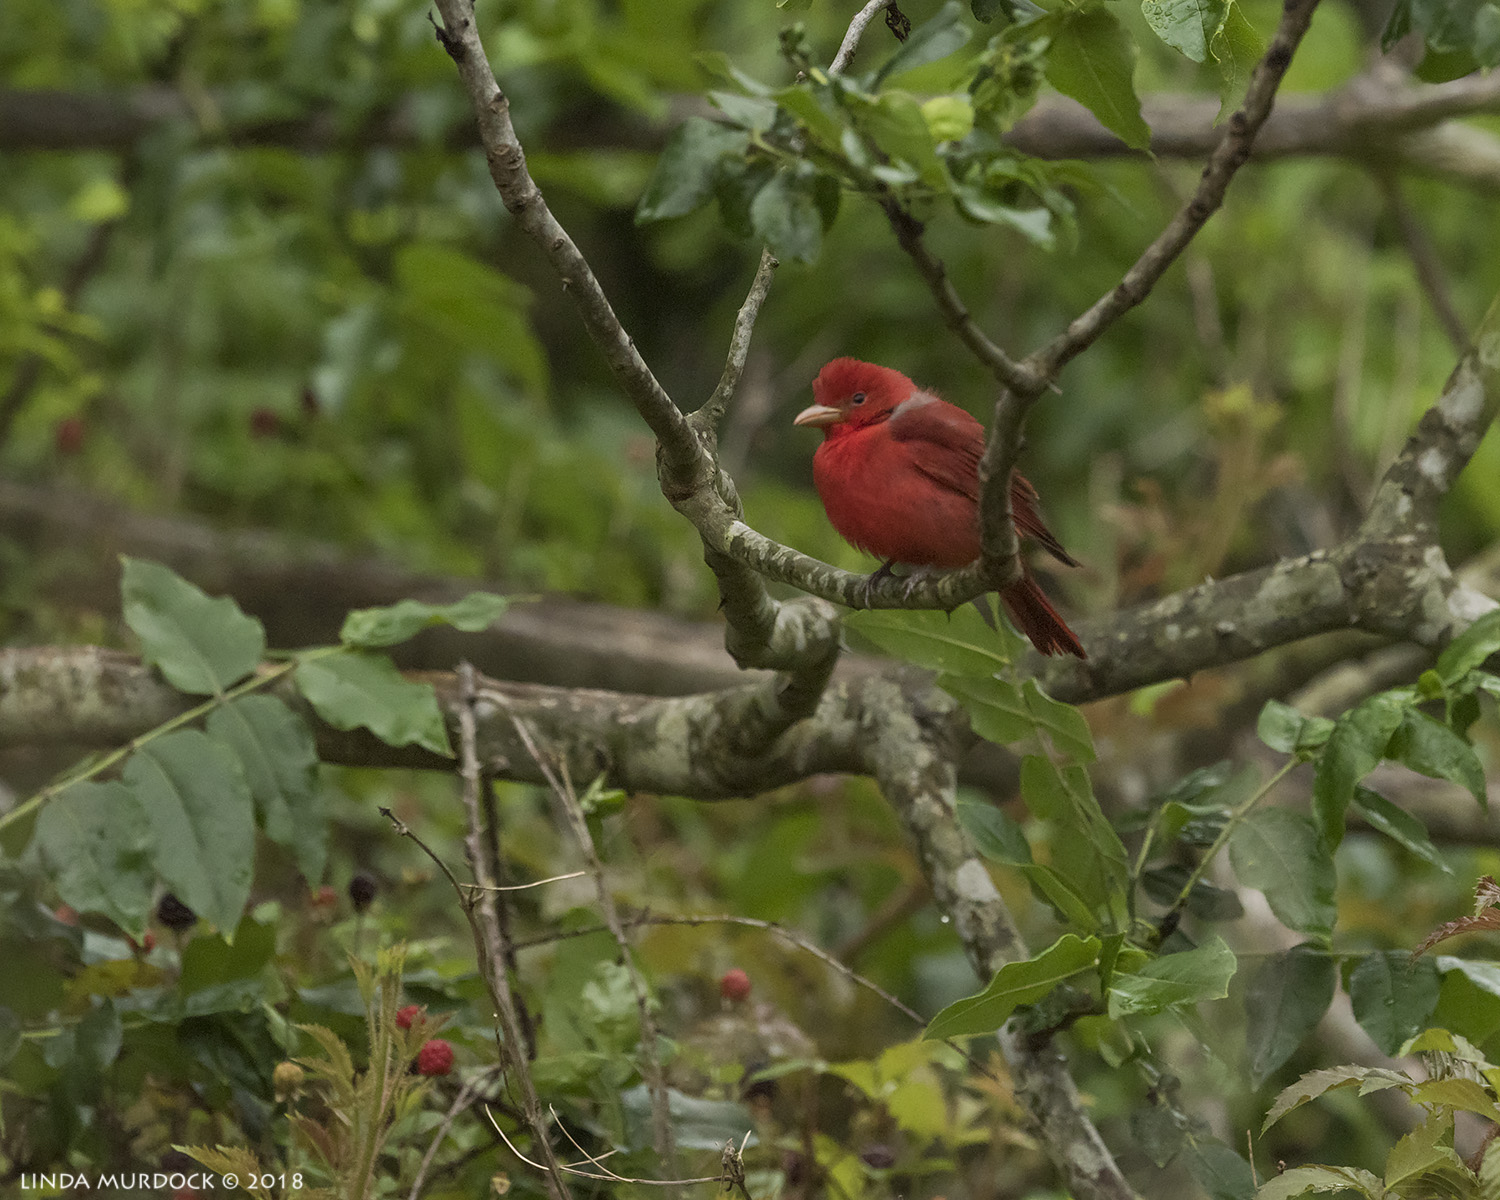 Summer Tanager very far away Nikon D810 with NIKKOR 500mm f/4E VR + Nikon 1.4x TC ~ 1/1250   sec f/7.1 ISO 2000; tripod